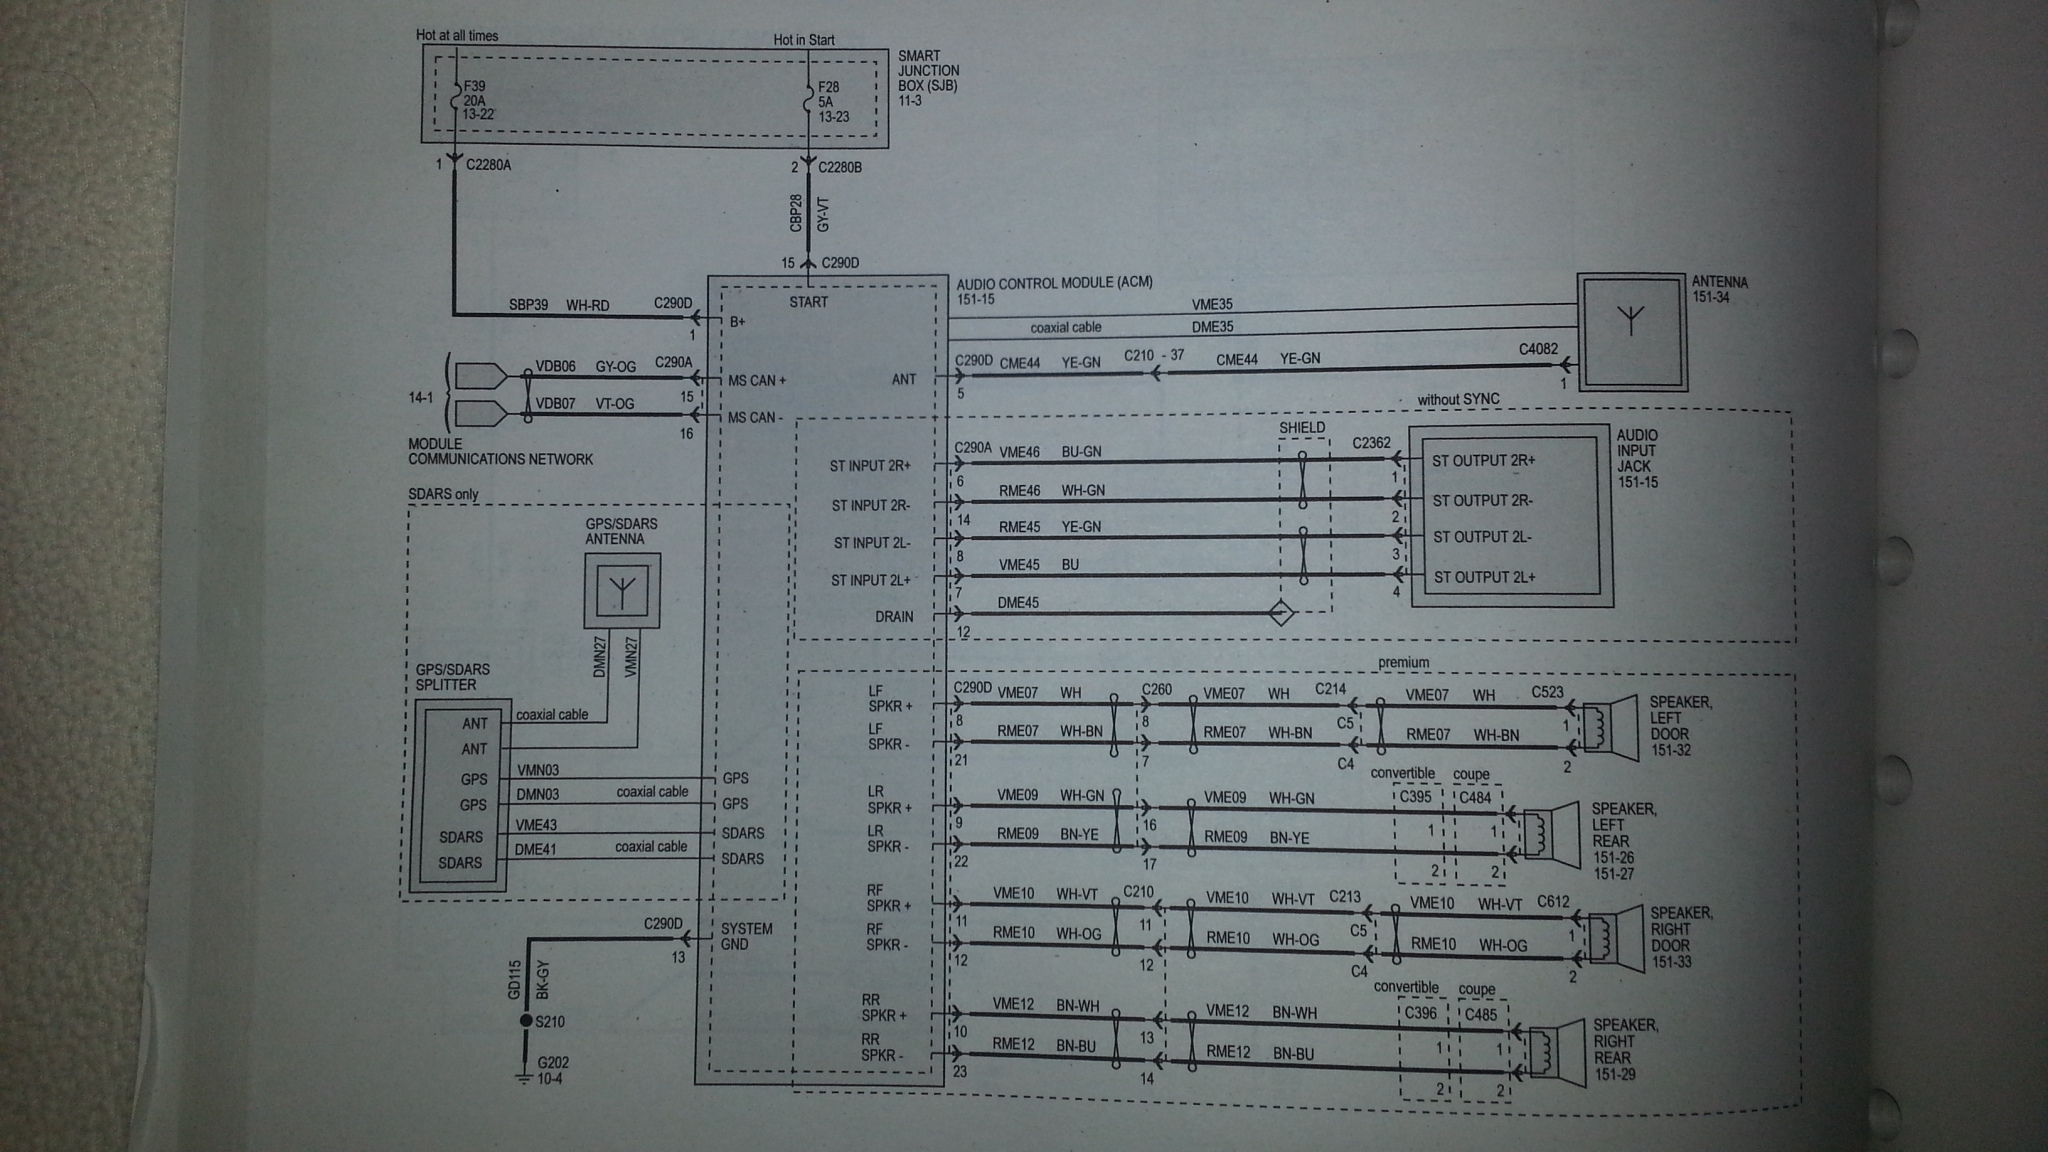 2012 Chevy Sonic Radio Wiring Diagram 37 Images 168240 20140916 174005 Help With 2014 Stereo Mustang Evolution